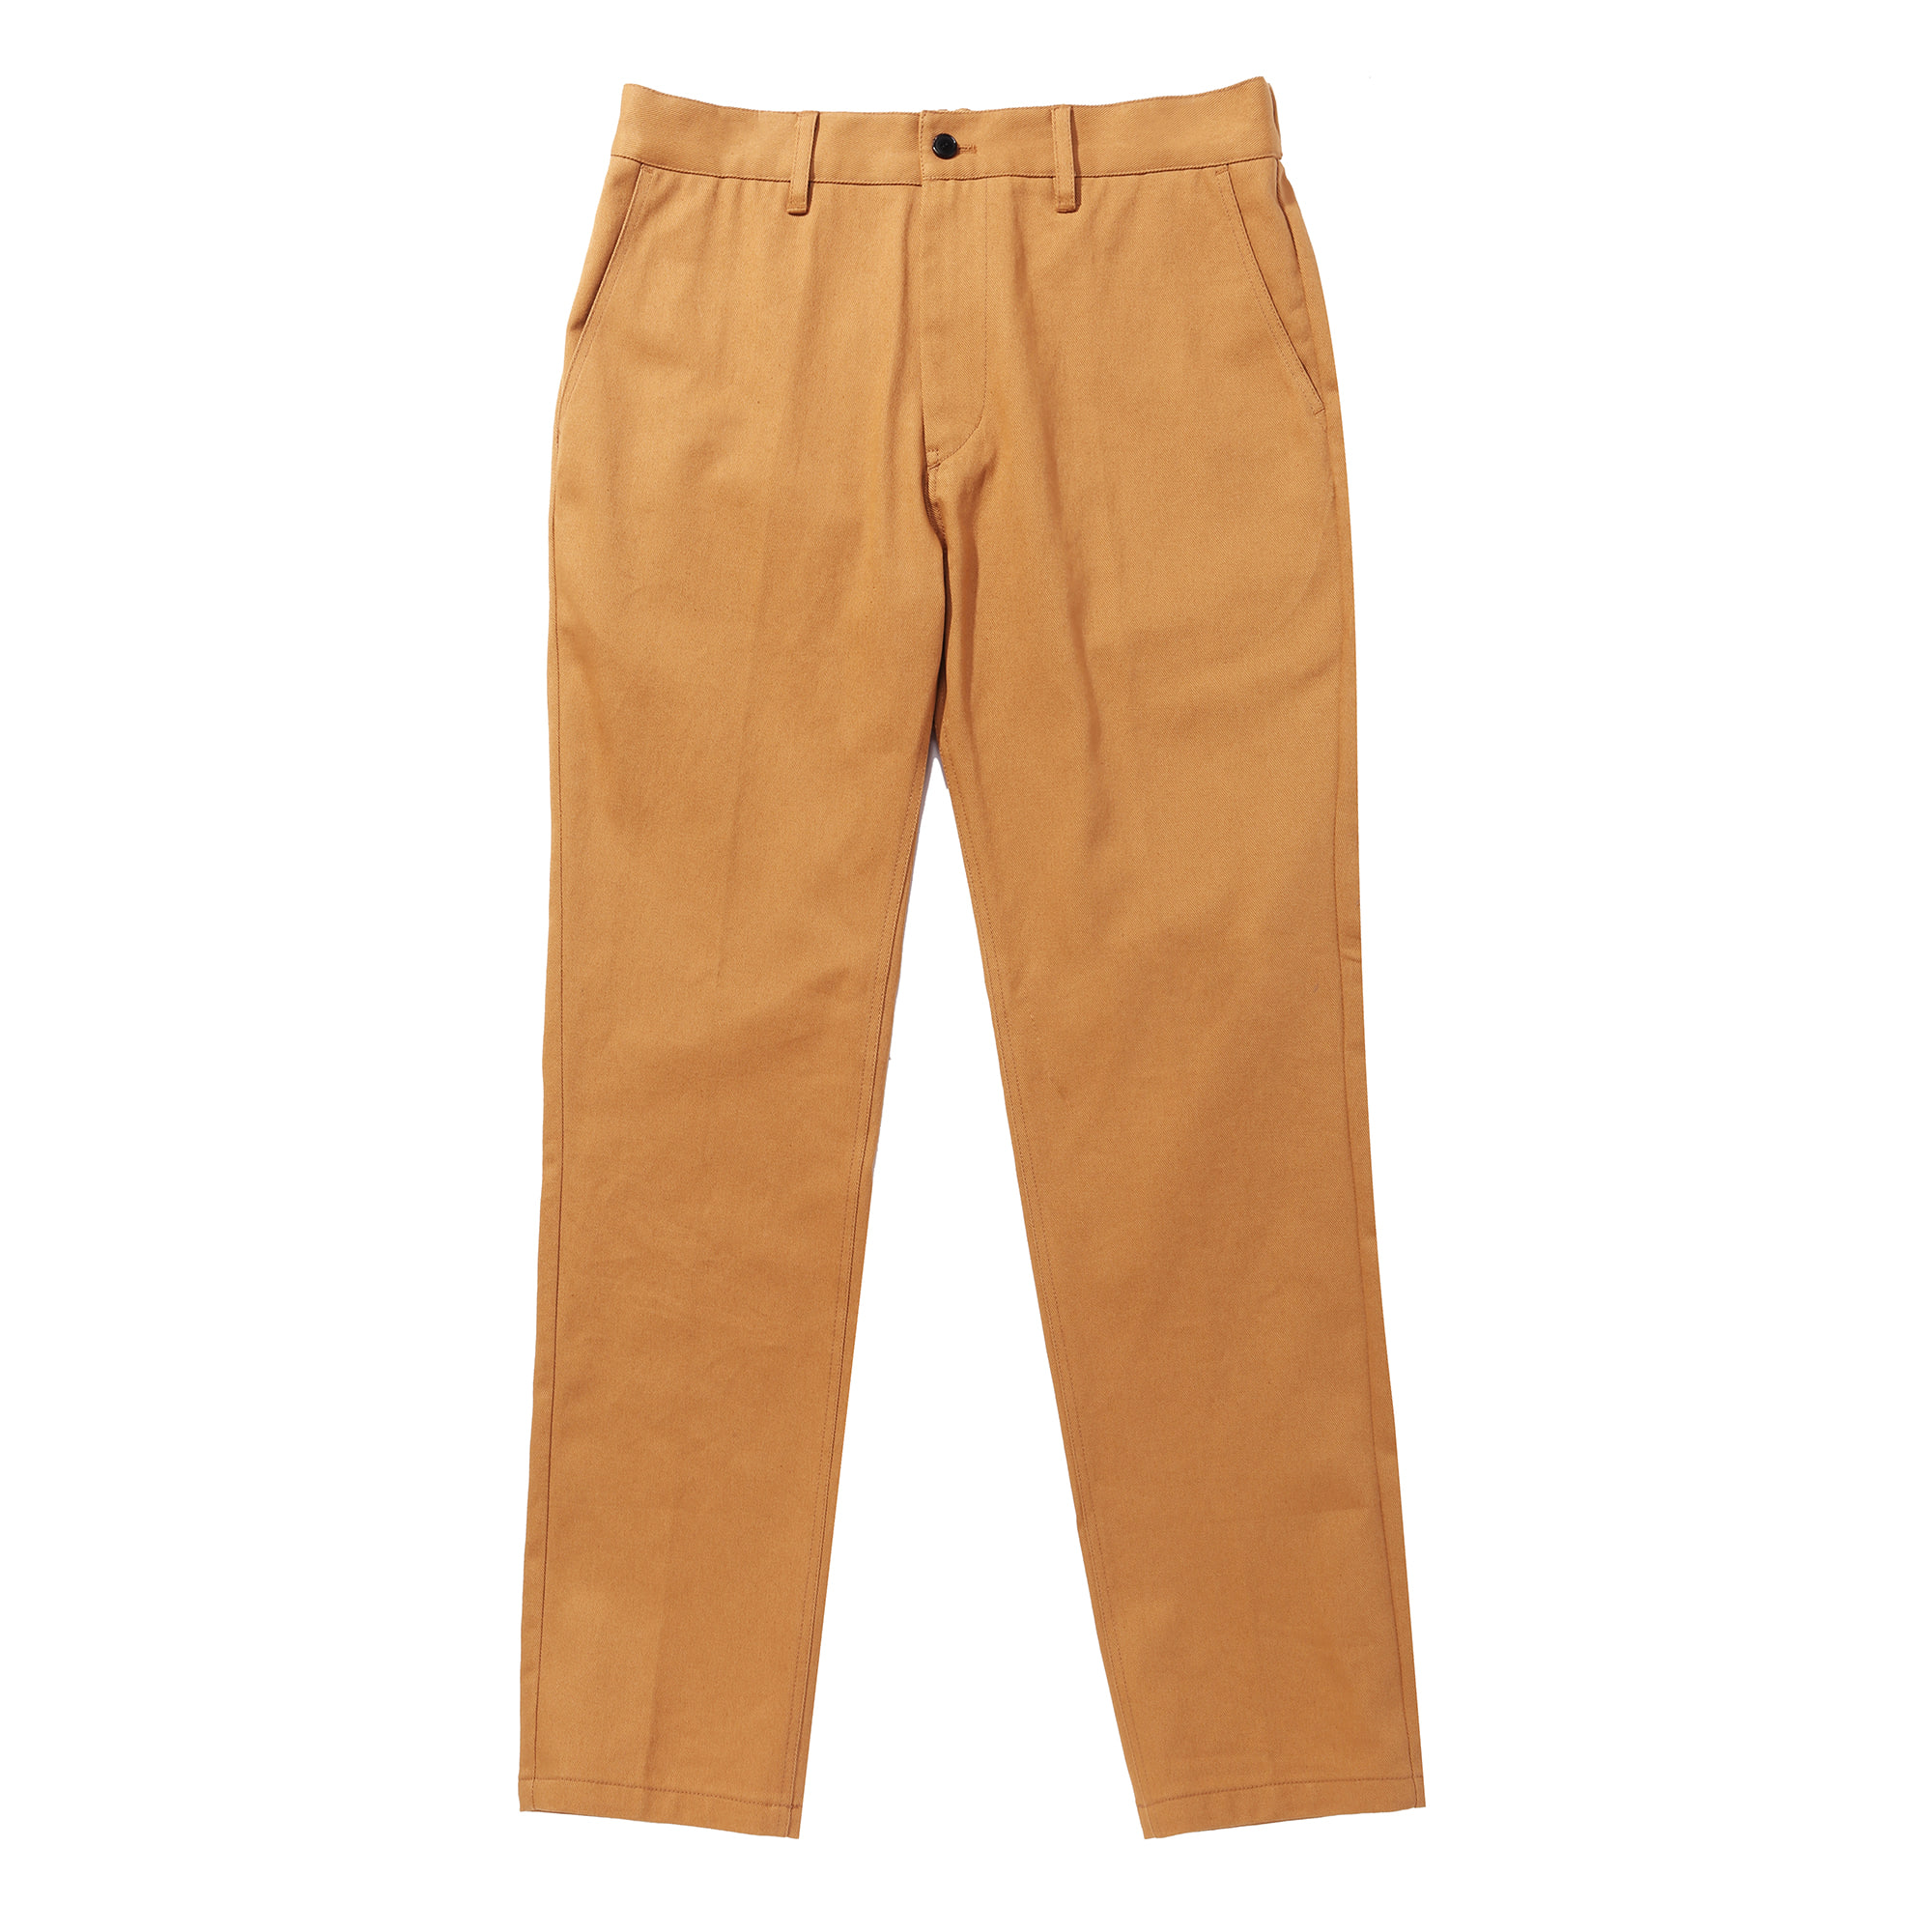 19FW MM Standard Cotton Pants MYFAX4517